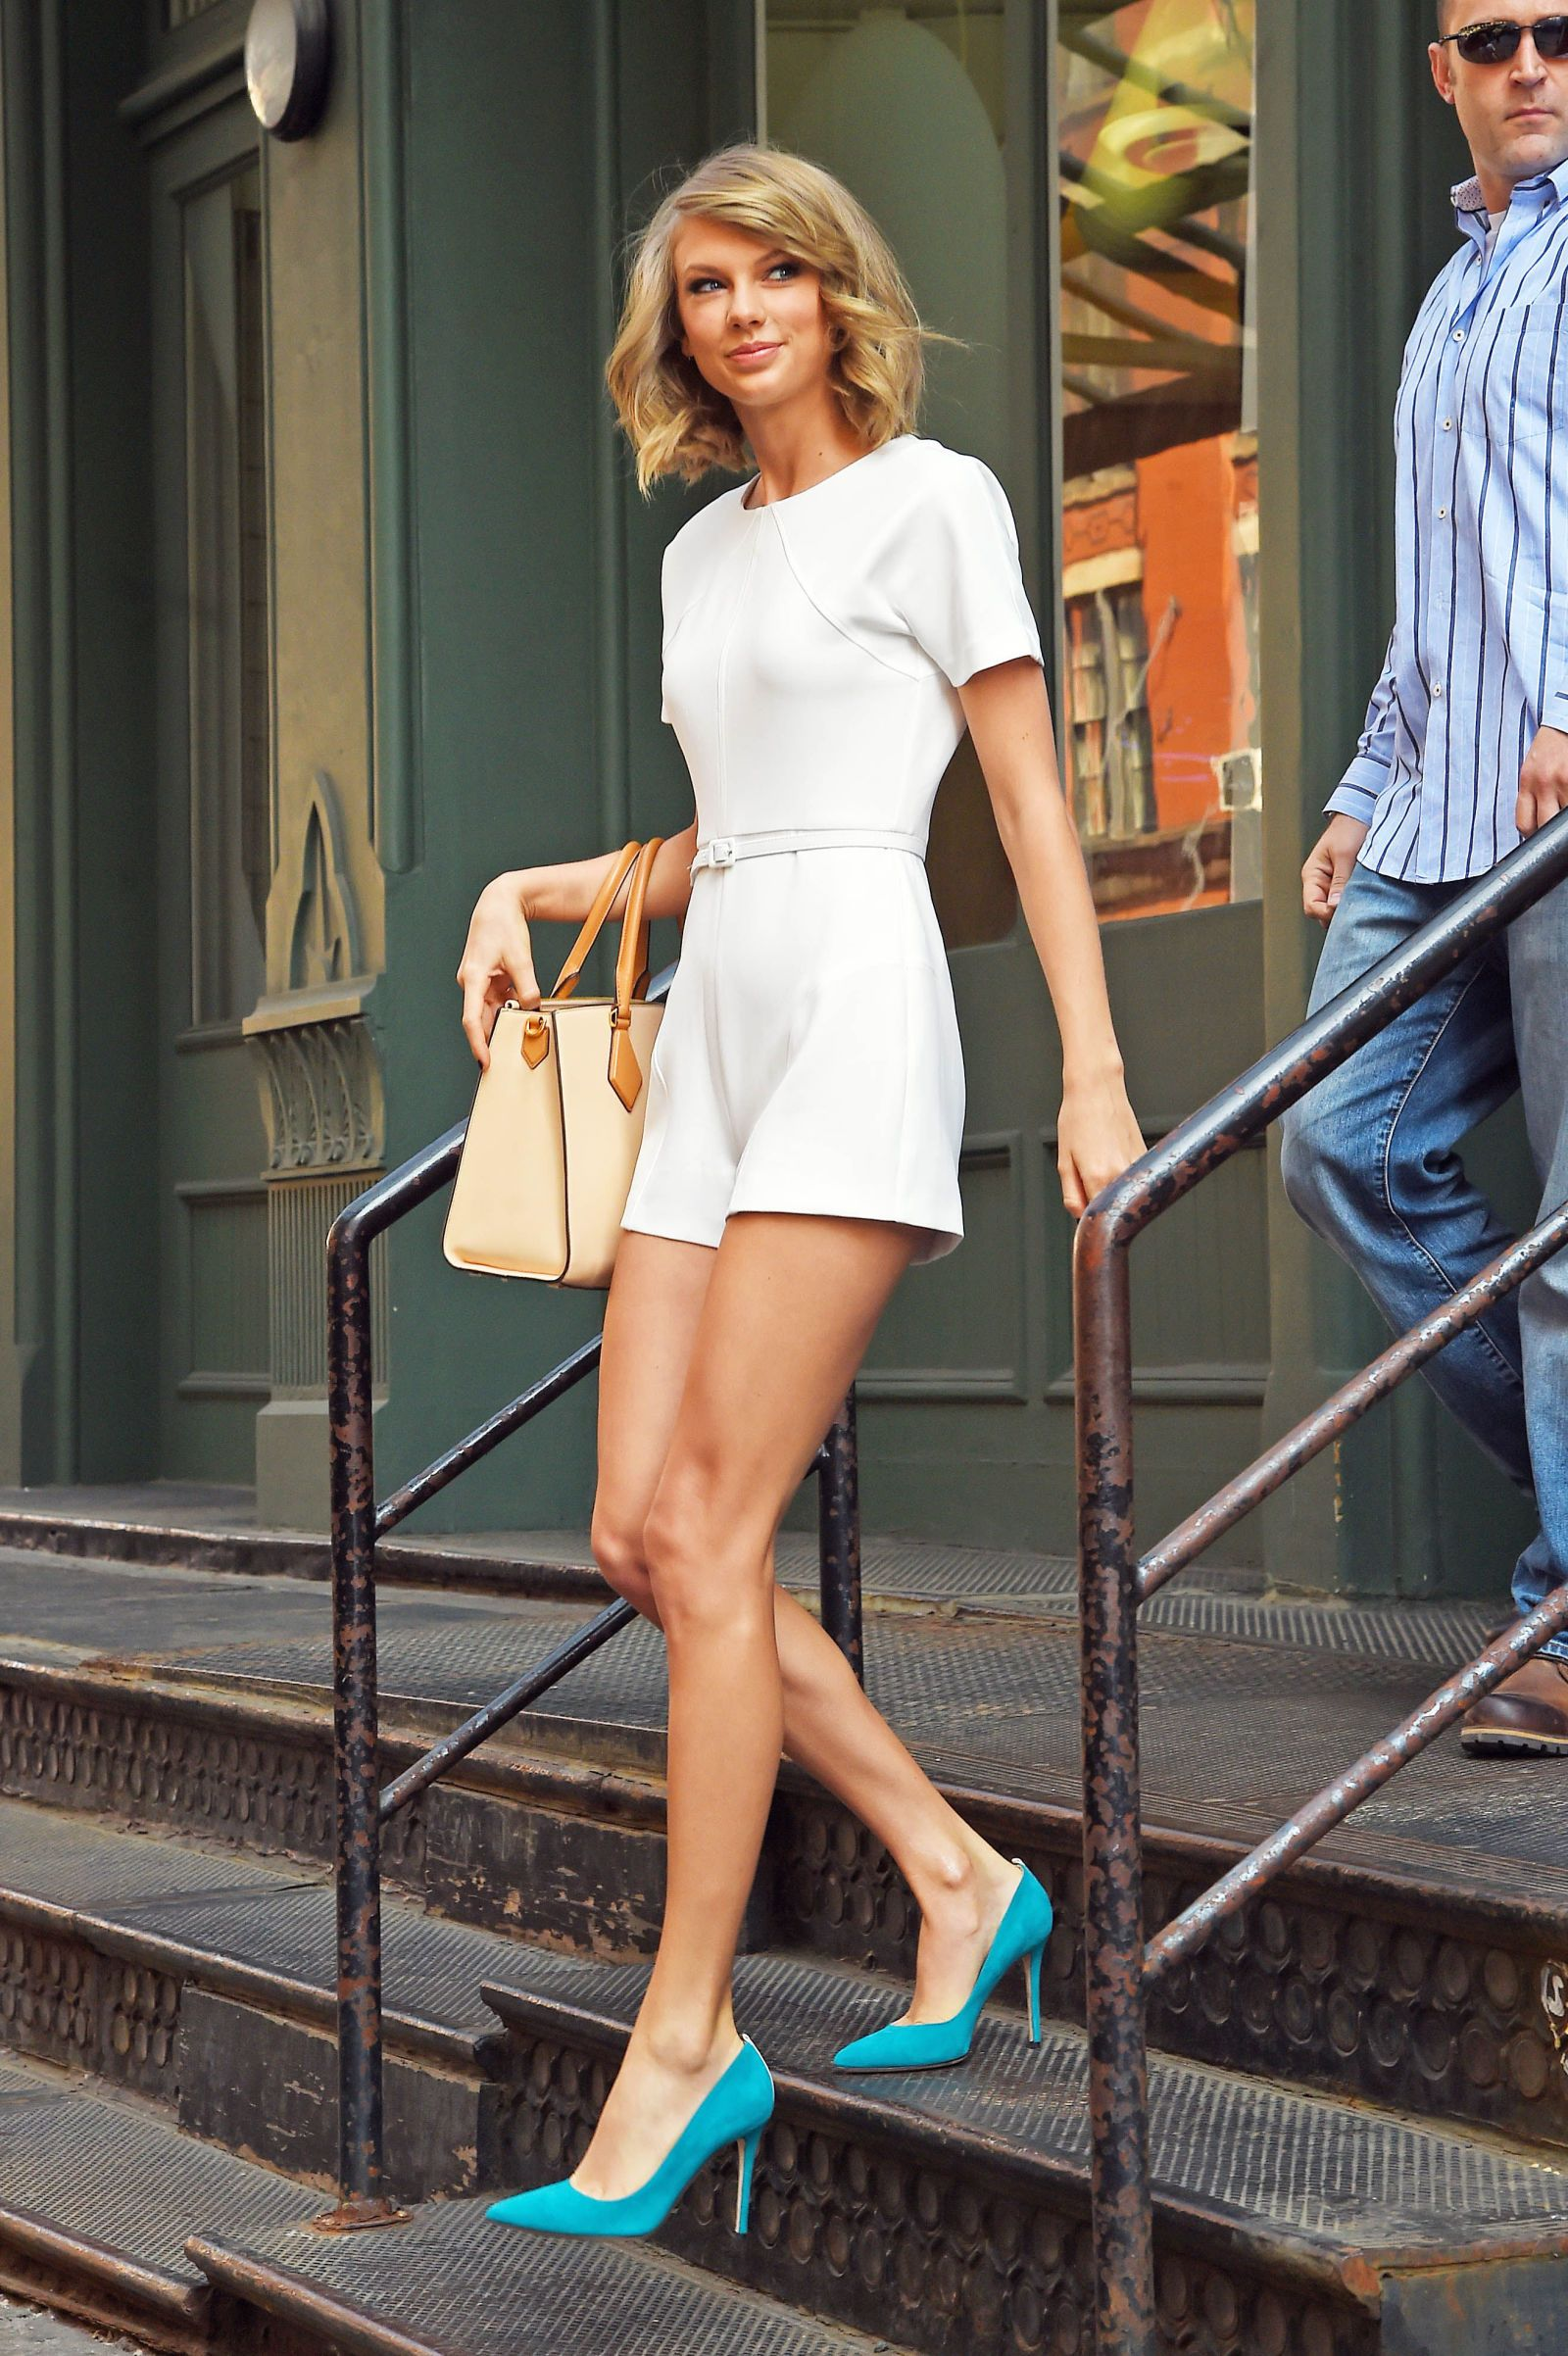 Taylor Swift Just Wore the Most Un-Taylor Swift Outfit Ever and I m ... a2750add99a33